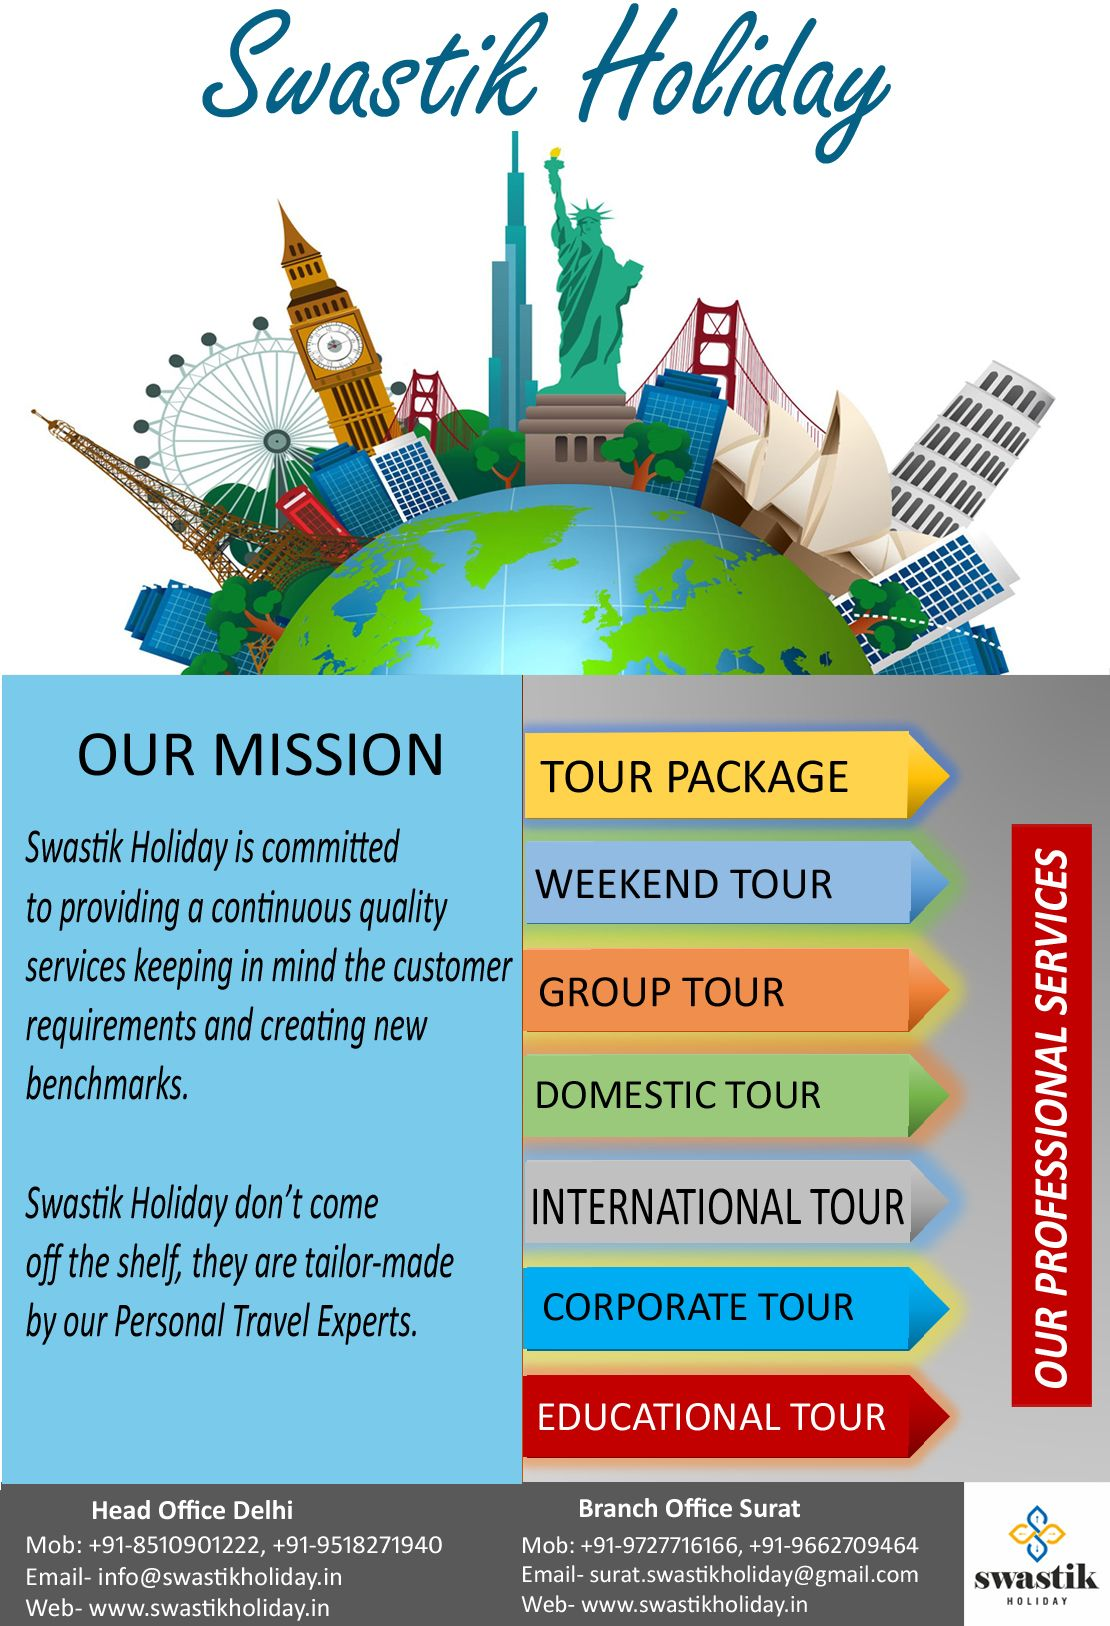 Swastik Holiday Tour Travel Agency Our Professional Services Tour Package Group Tour Domestic Tour In Tour Packages Holiday Tours Educational Tours